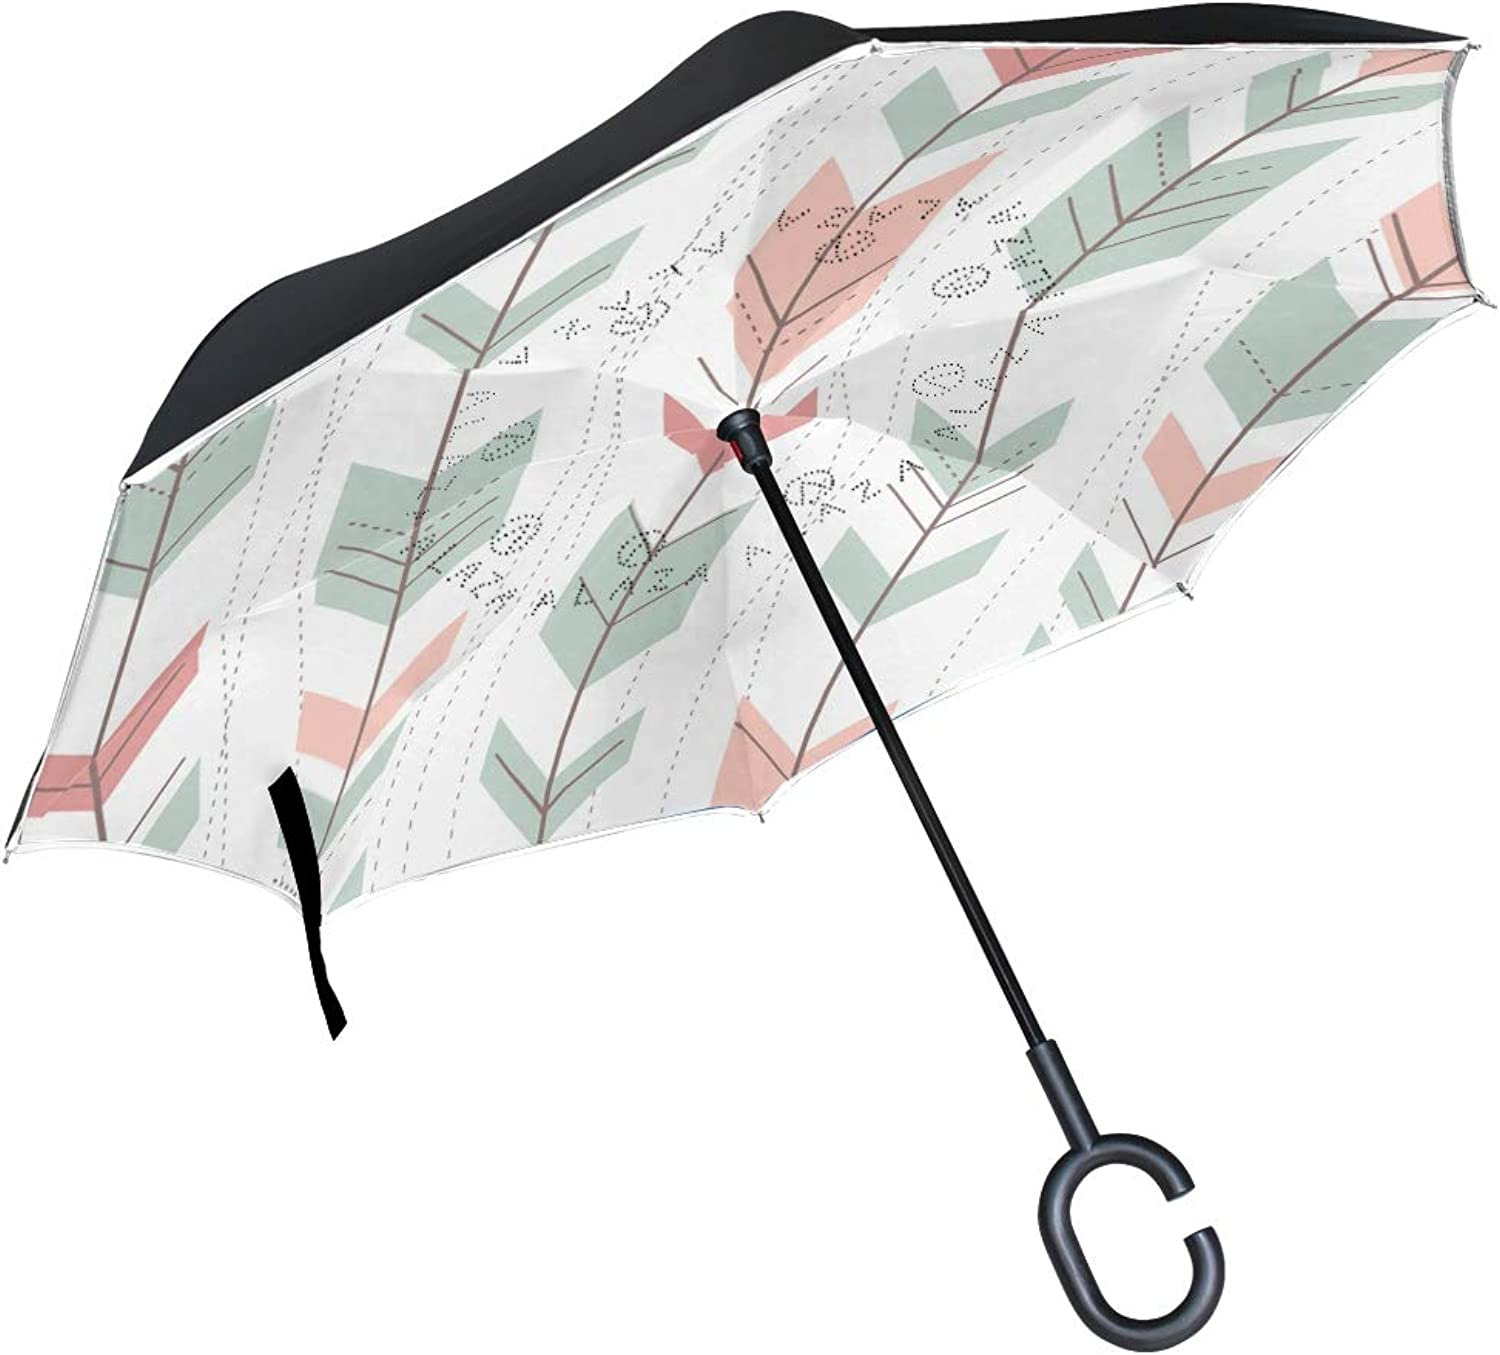 FAJRO Geometric Pattern in Retro Style Upside Down Ingreened Umbrellas CShaped Handle for Car Rain Outdoor Women Men